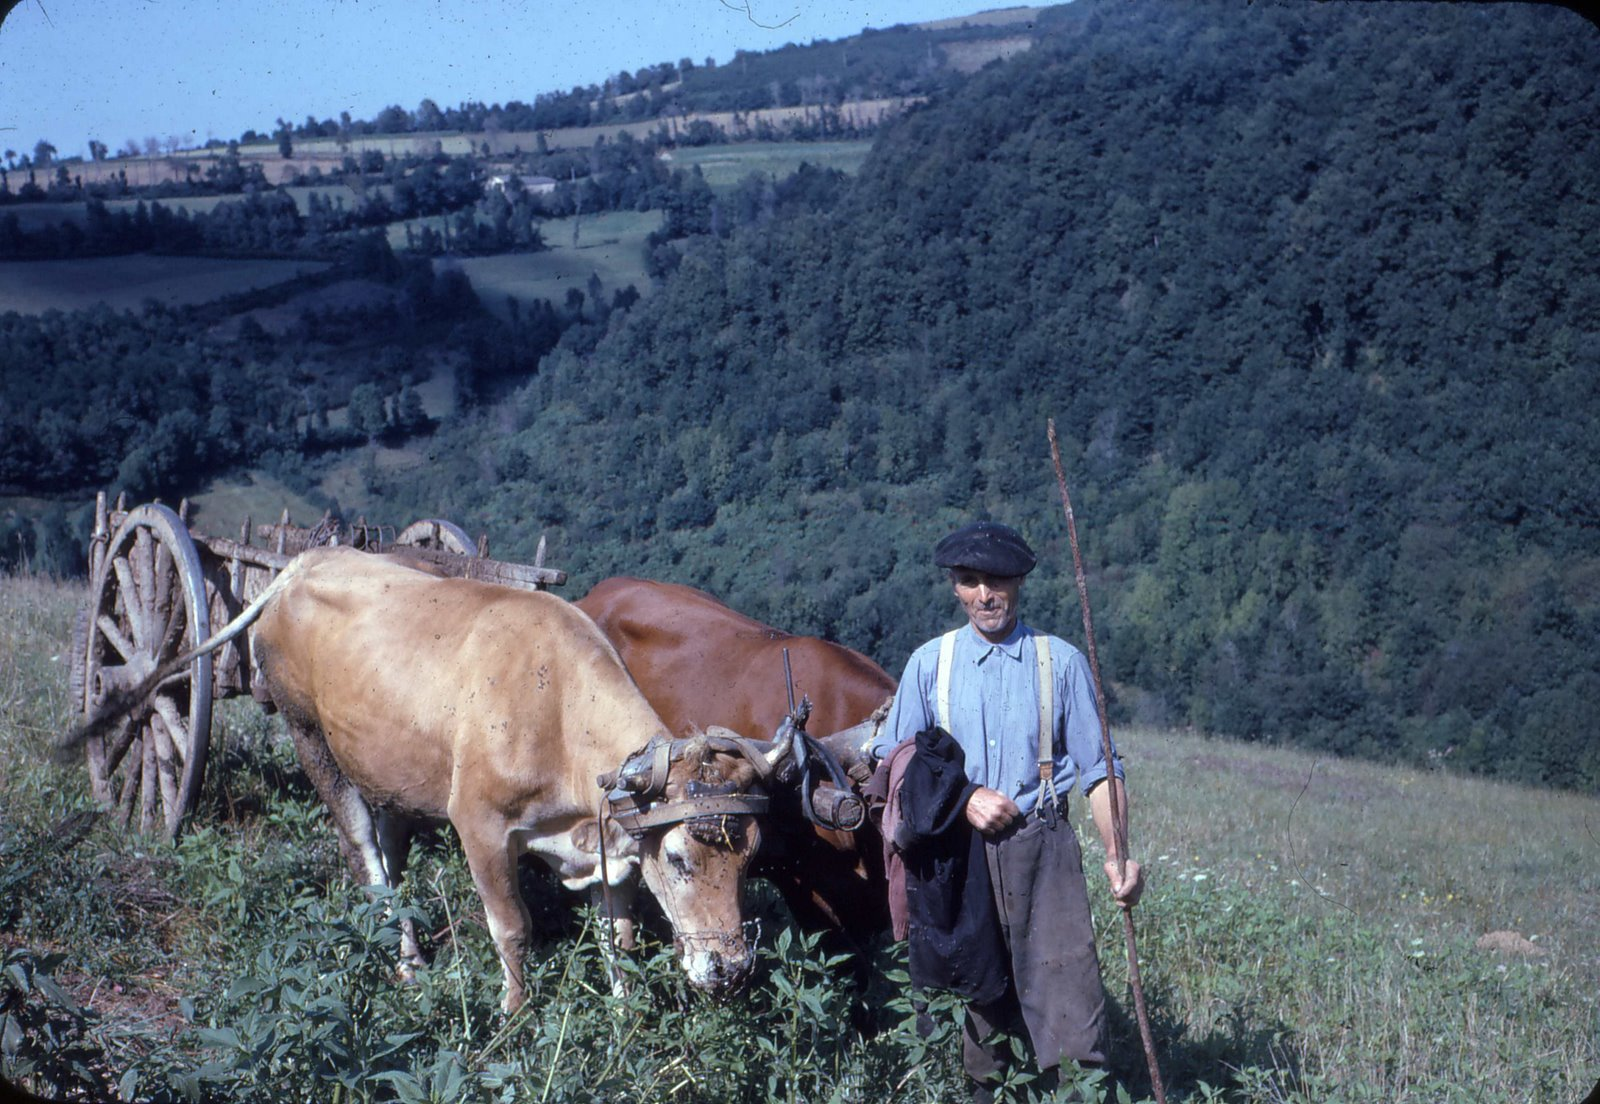 Pépé with two of his cows hauling hay.